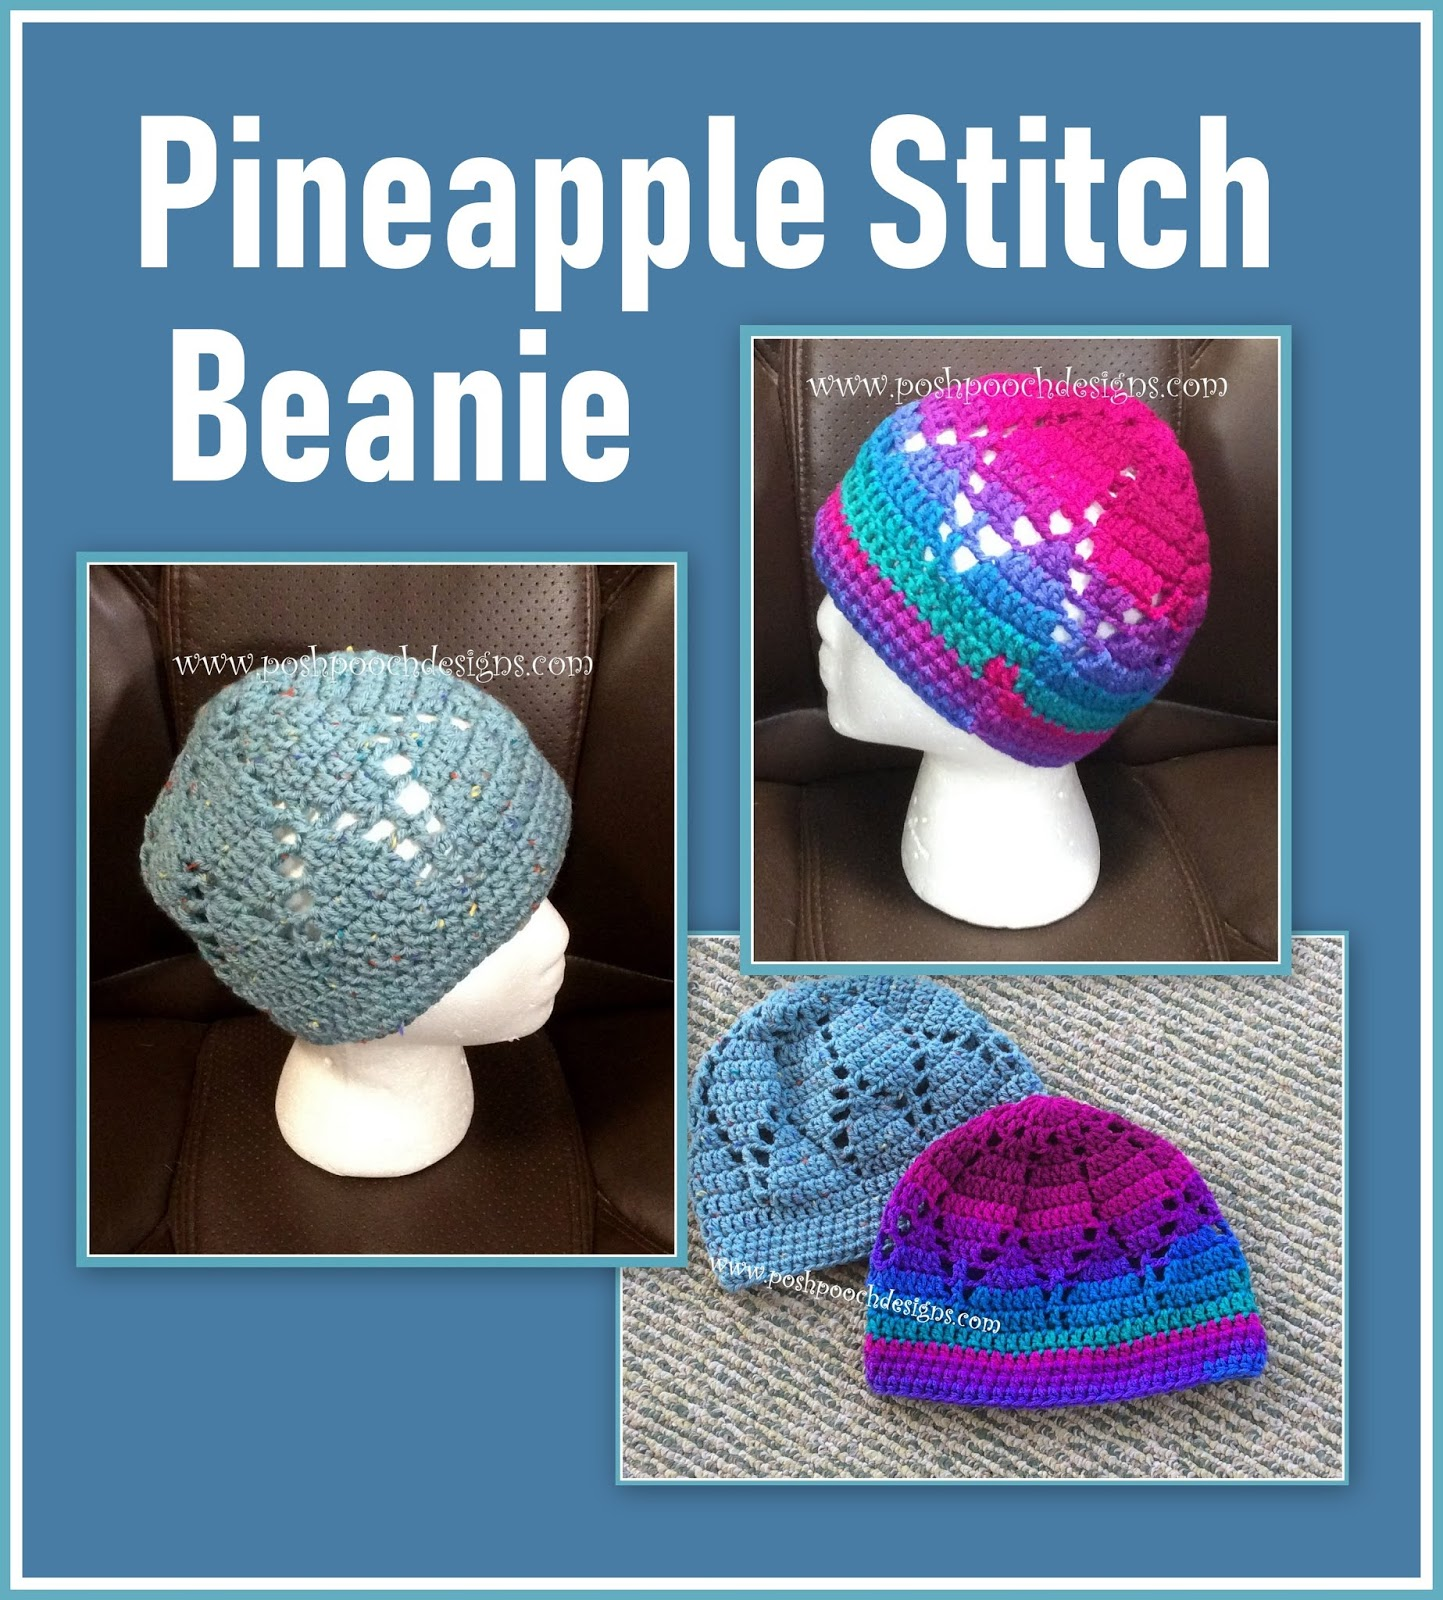 ab58f9abb31 Pineapple Stitch Beanie Crochet Pattern By Sara Sach of. Posh Pooch Designs